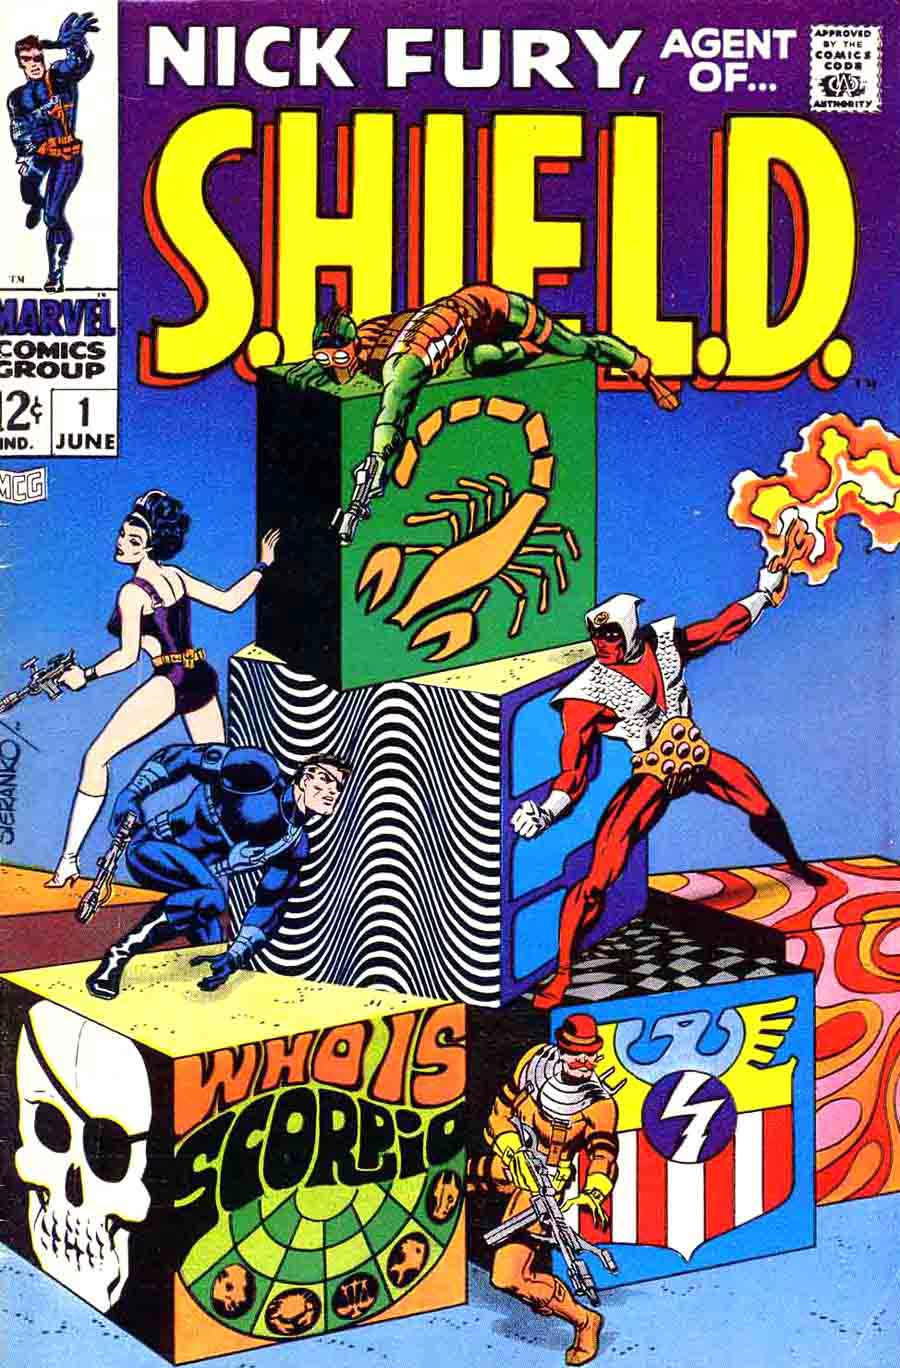 Nick Fury Agent of Shield v1 #1 1960s marvel comic book cover art by Jim Steranko